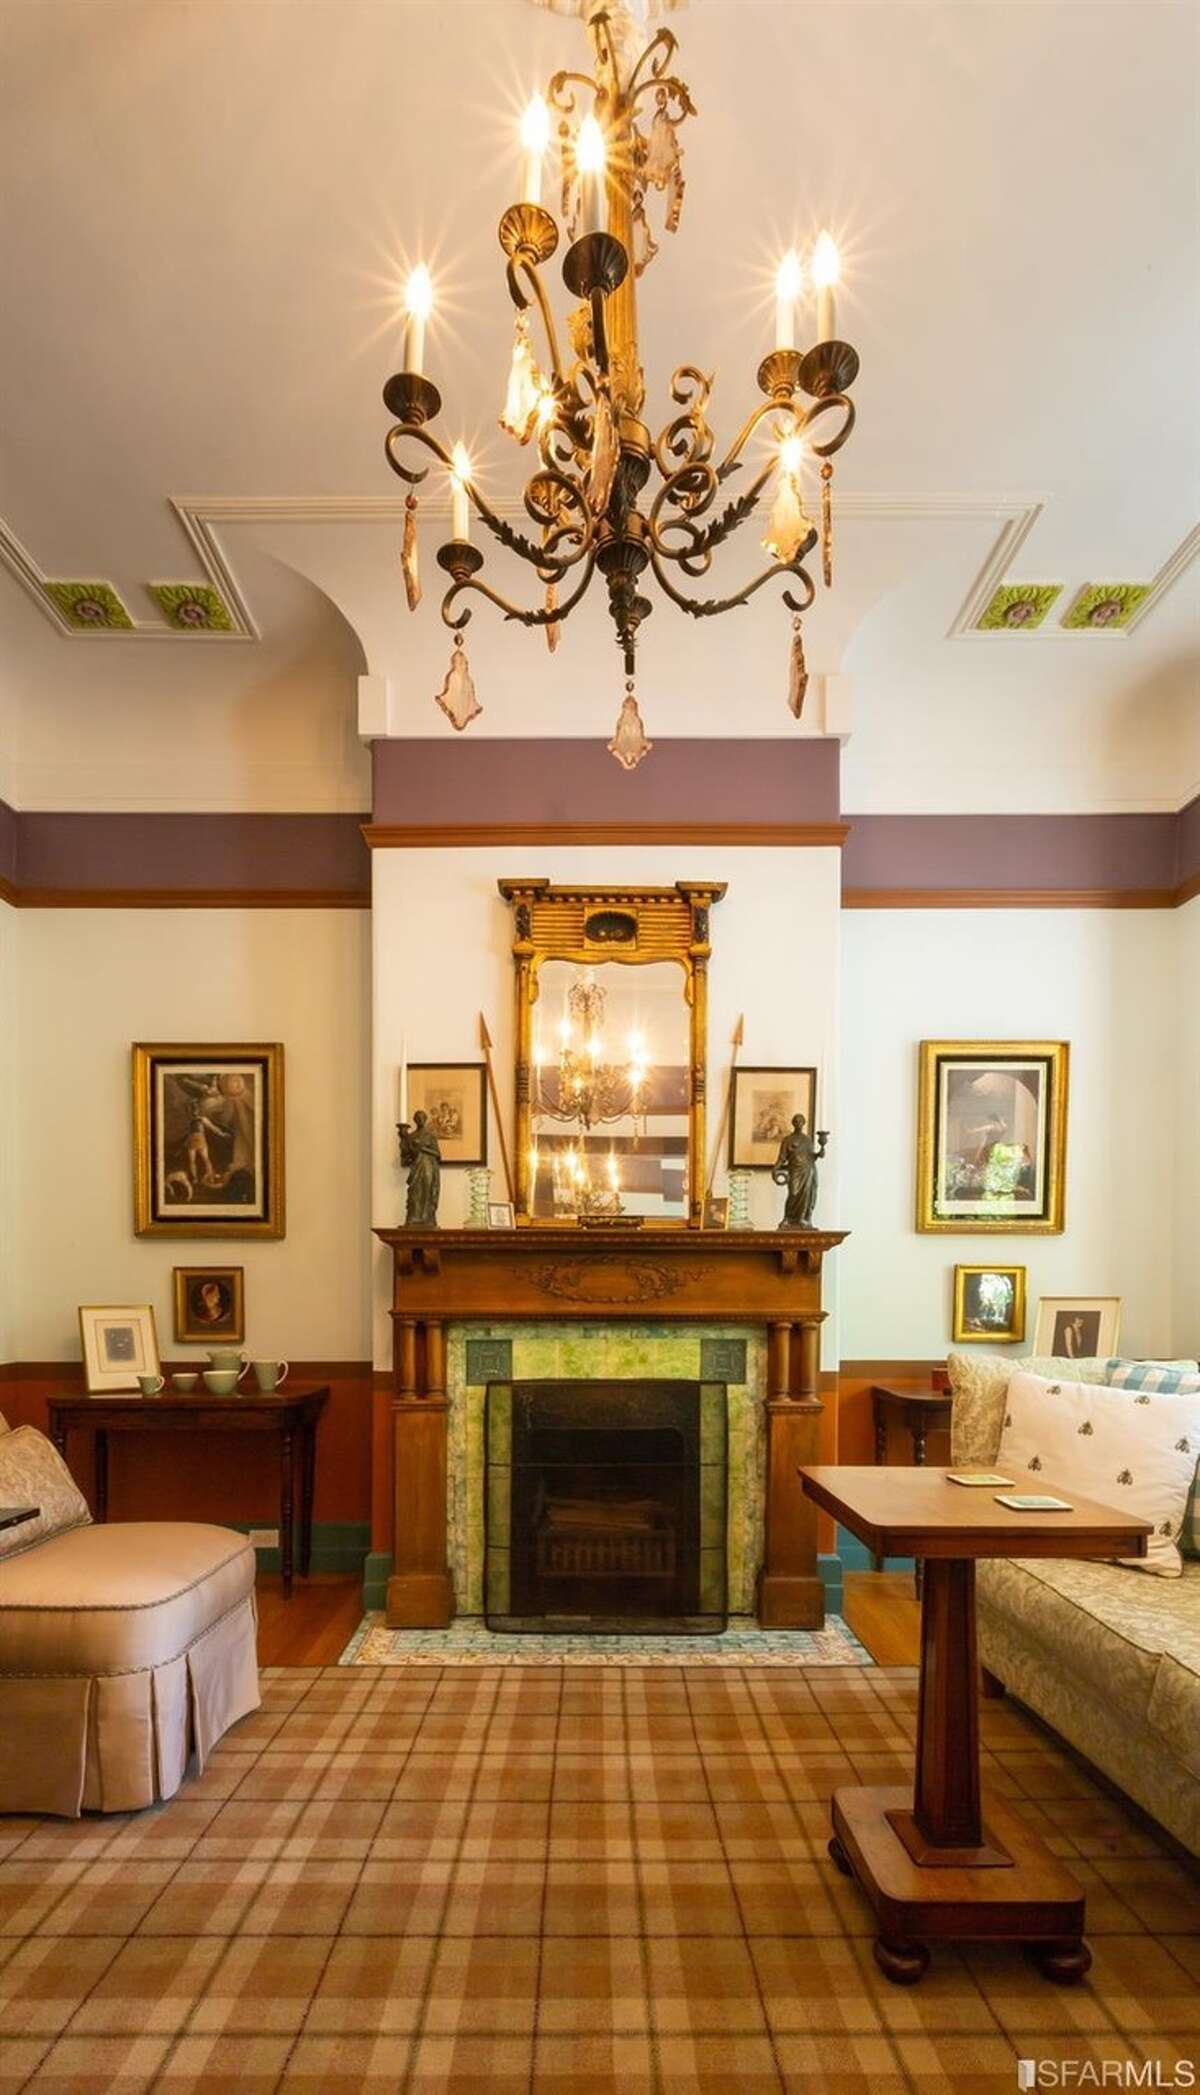 More original features can be found in the front room of the double parlor, including the ceiling details and fireplace. The current owners